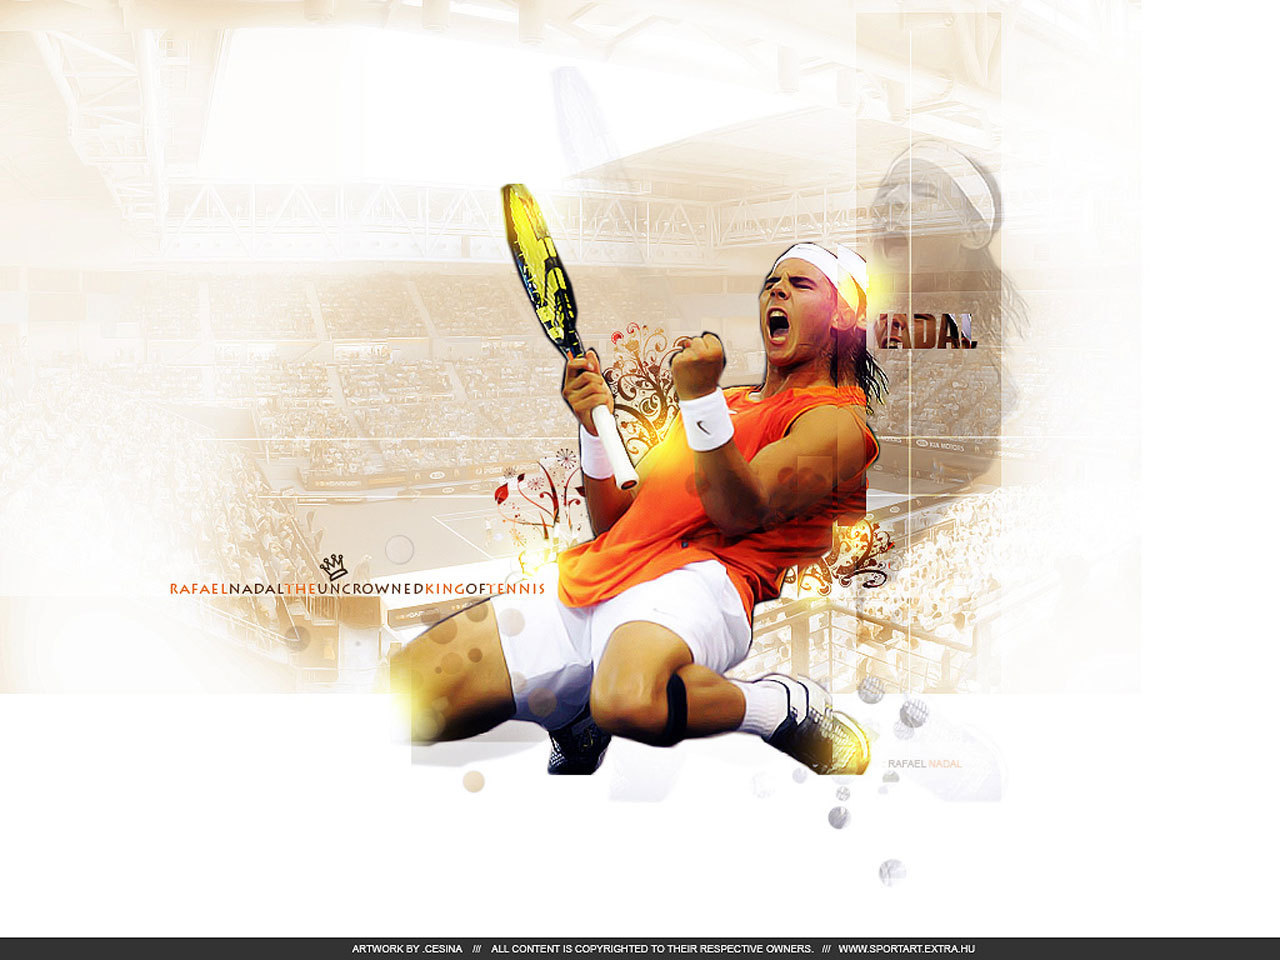 Group Of Beach Girls Wallpaper Rafael Nadal Wallpaper Tennis Wallpaper 7220793 Fanpop